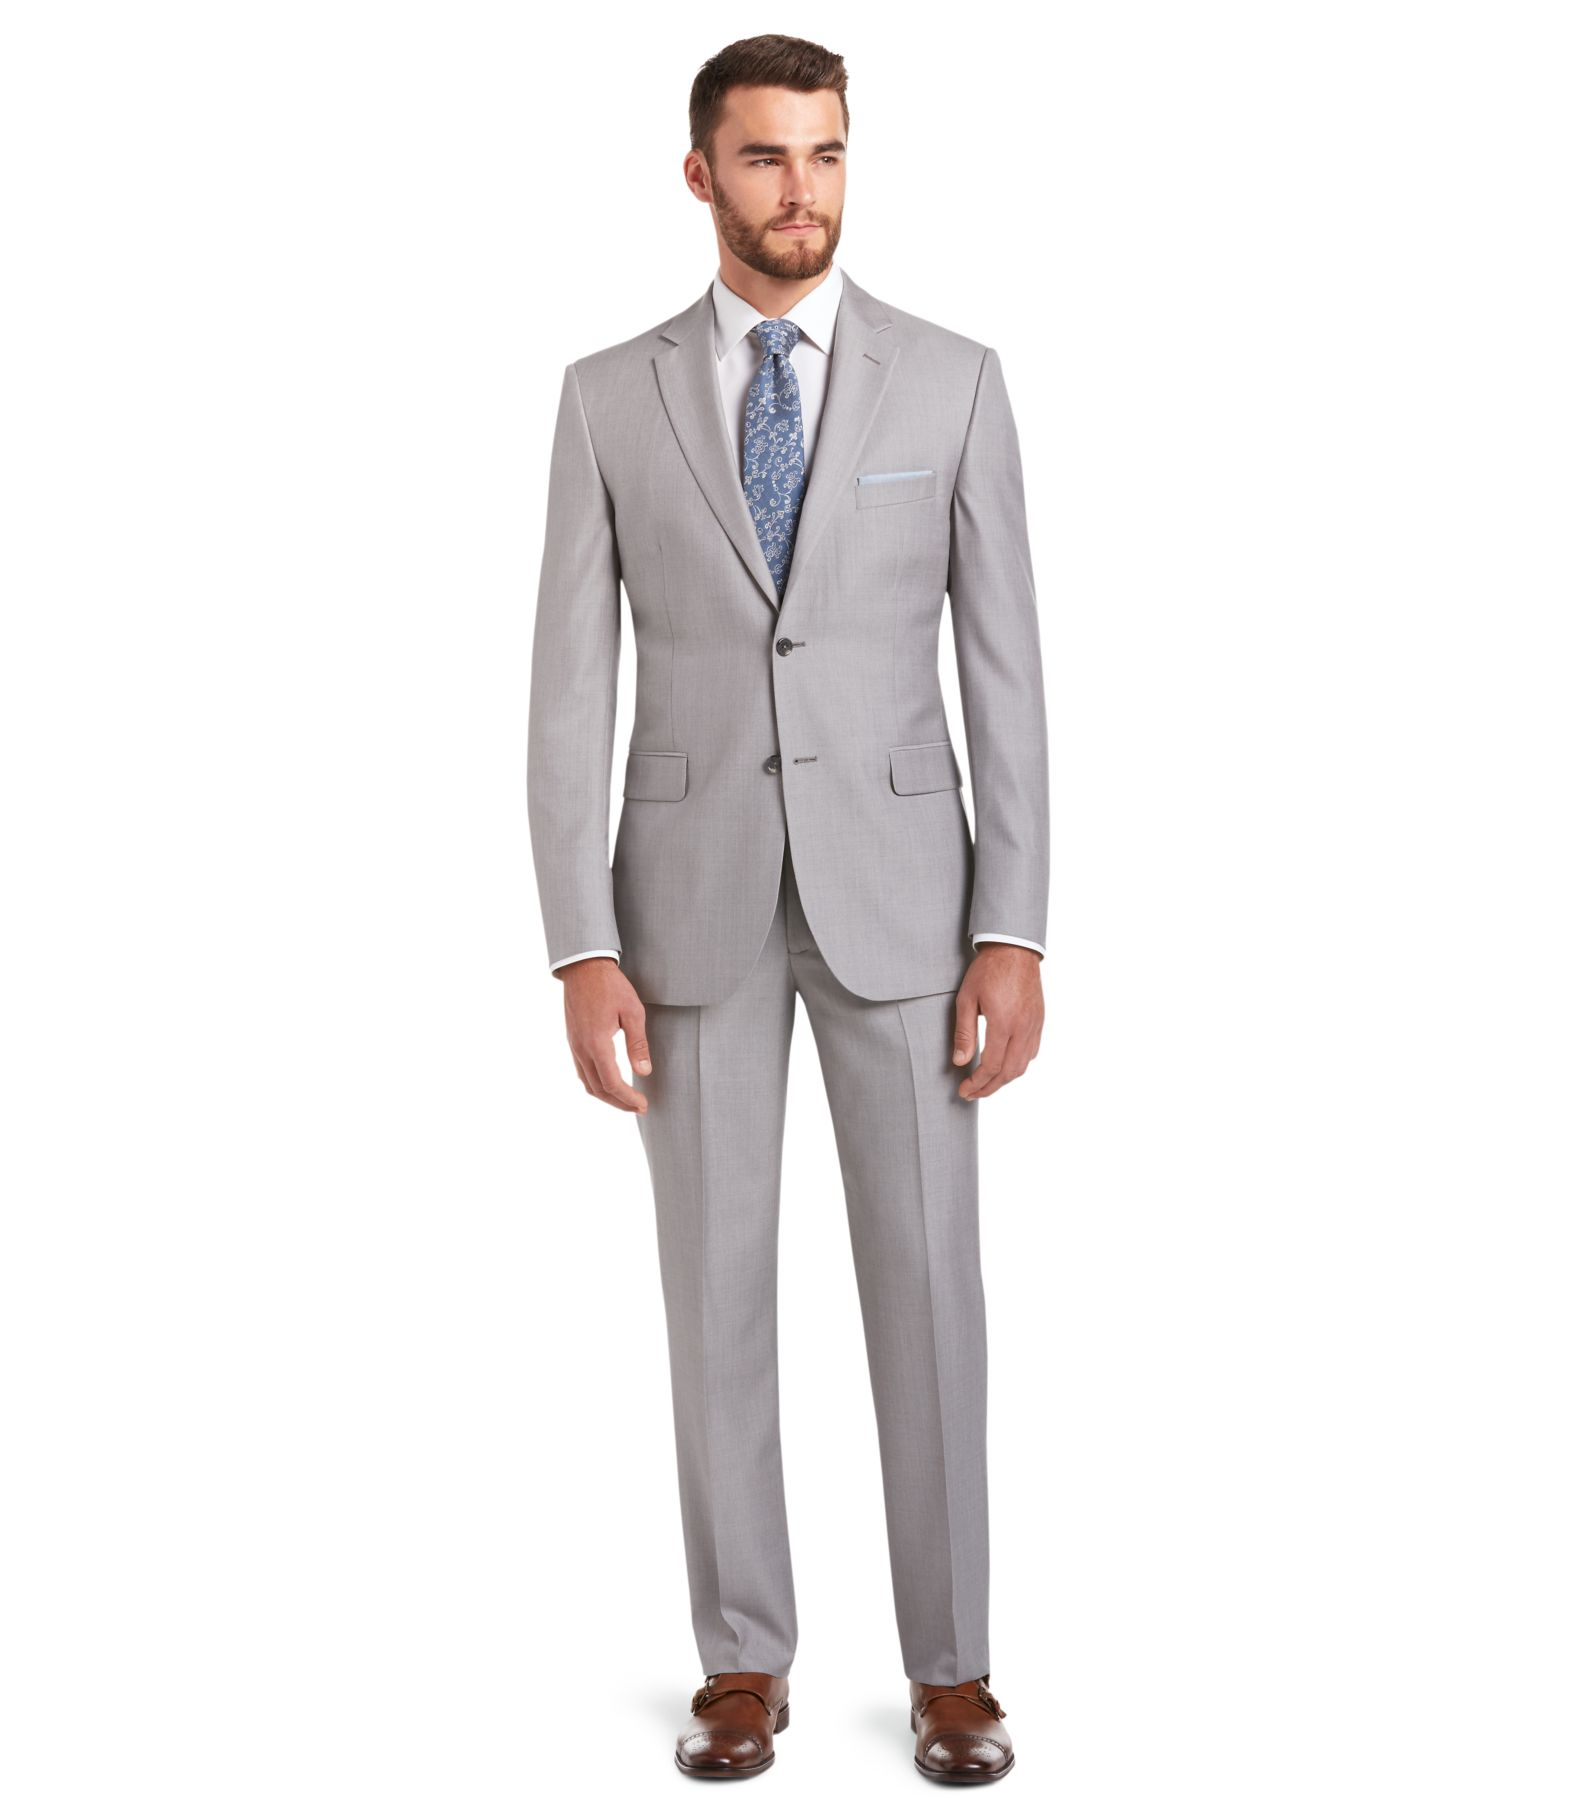 Signature Imperial Blend Collection Tailored Fit Suit - All Suits